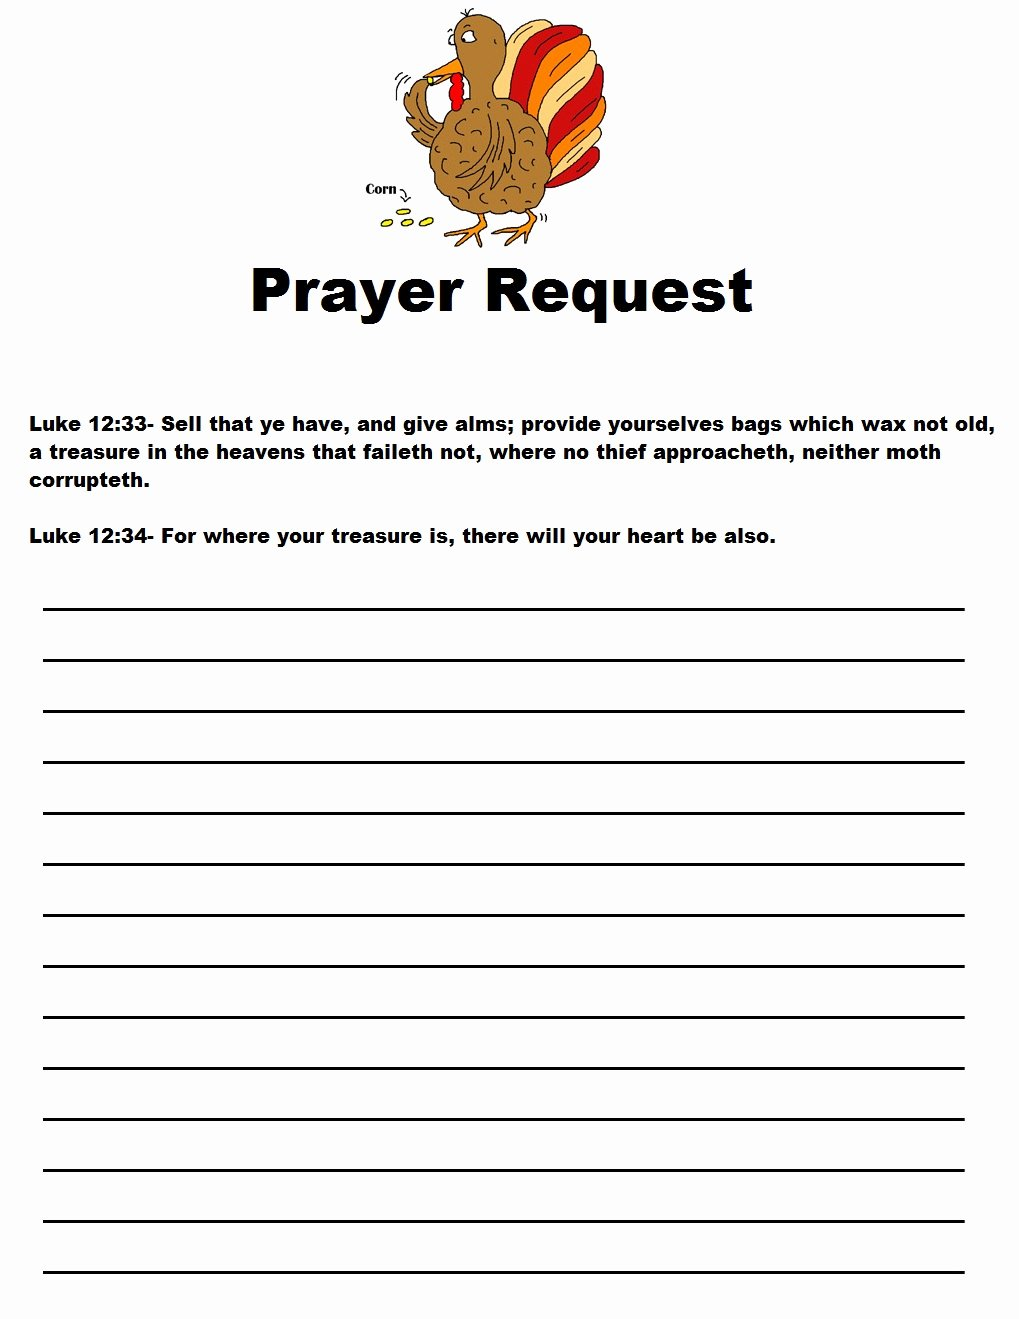 Prayer Request form Template Lovely Thanksgiving Legend Sunday School Lesson